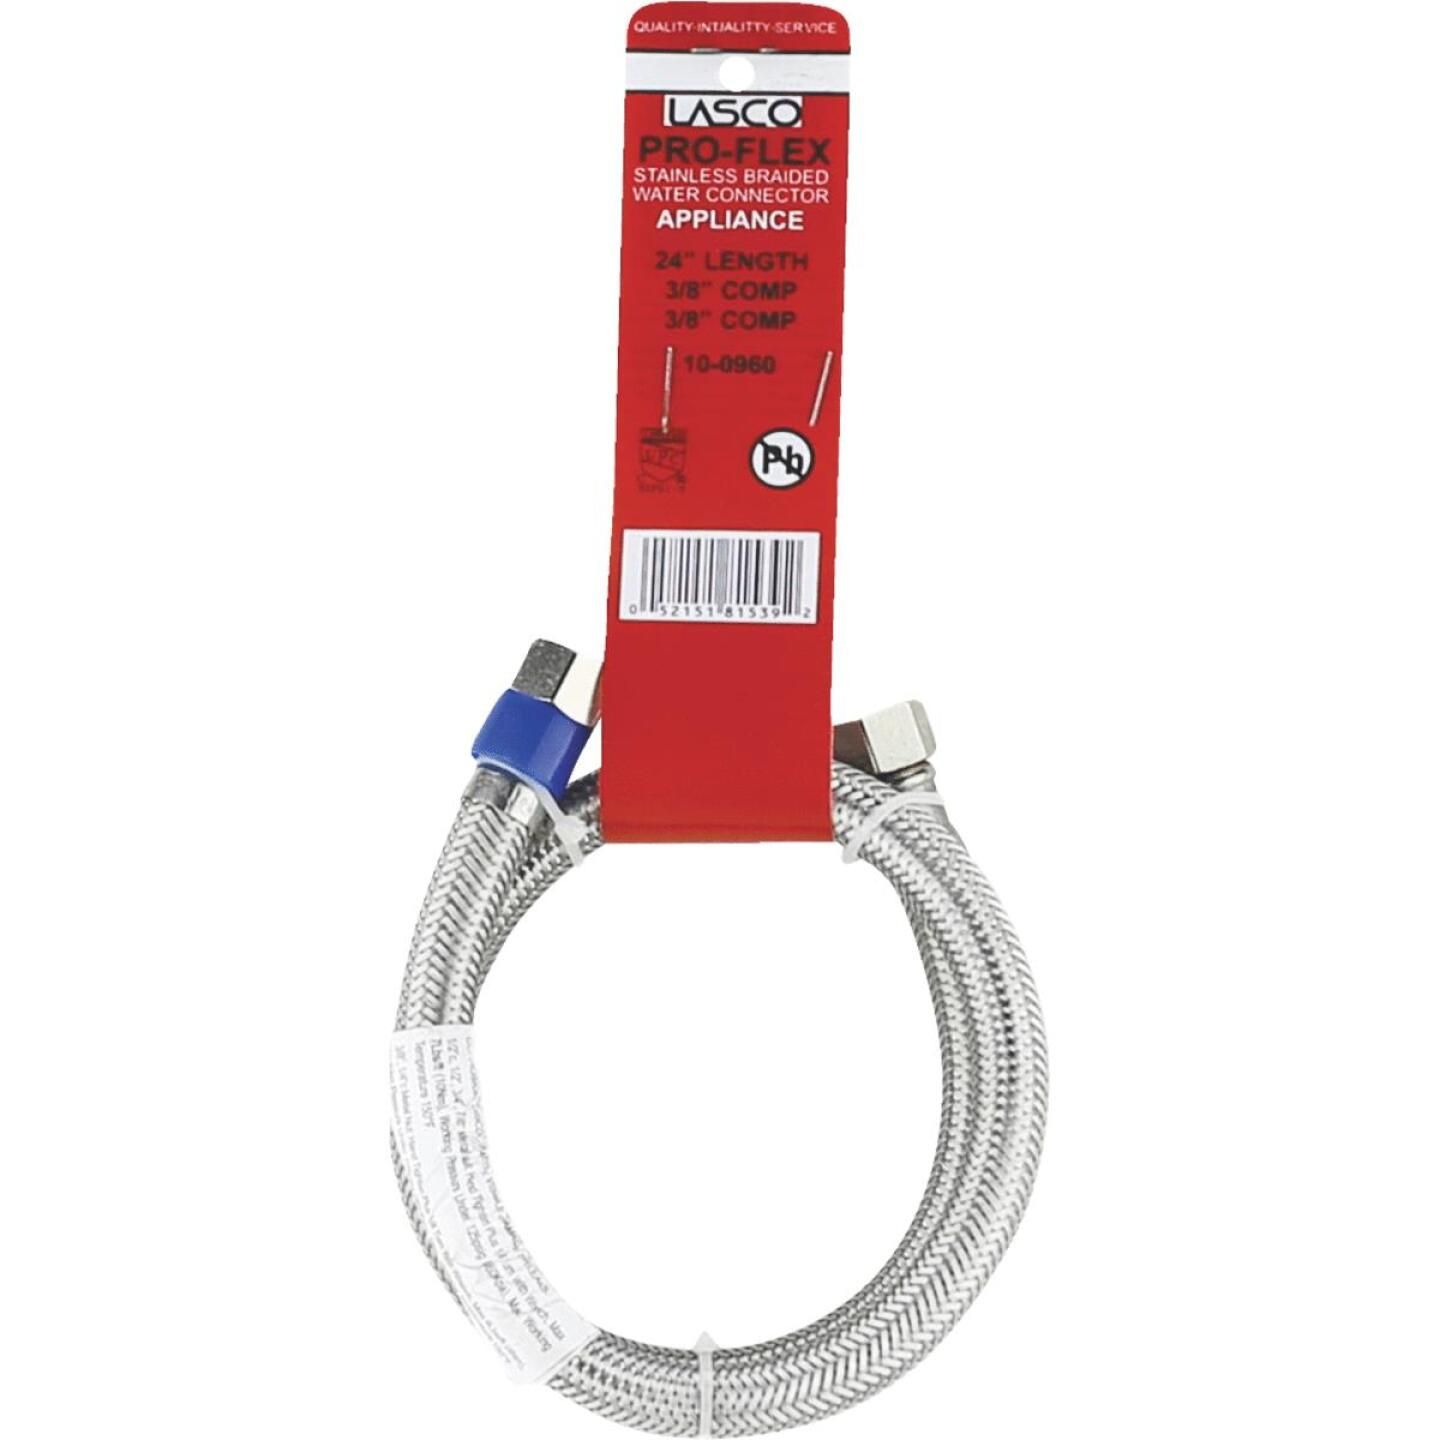 Lasco 3/8 In.C x 3/8 In.C x 24 In.L Braided Stainless Steel Flex Line Appliance Water Connector Image 2